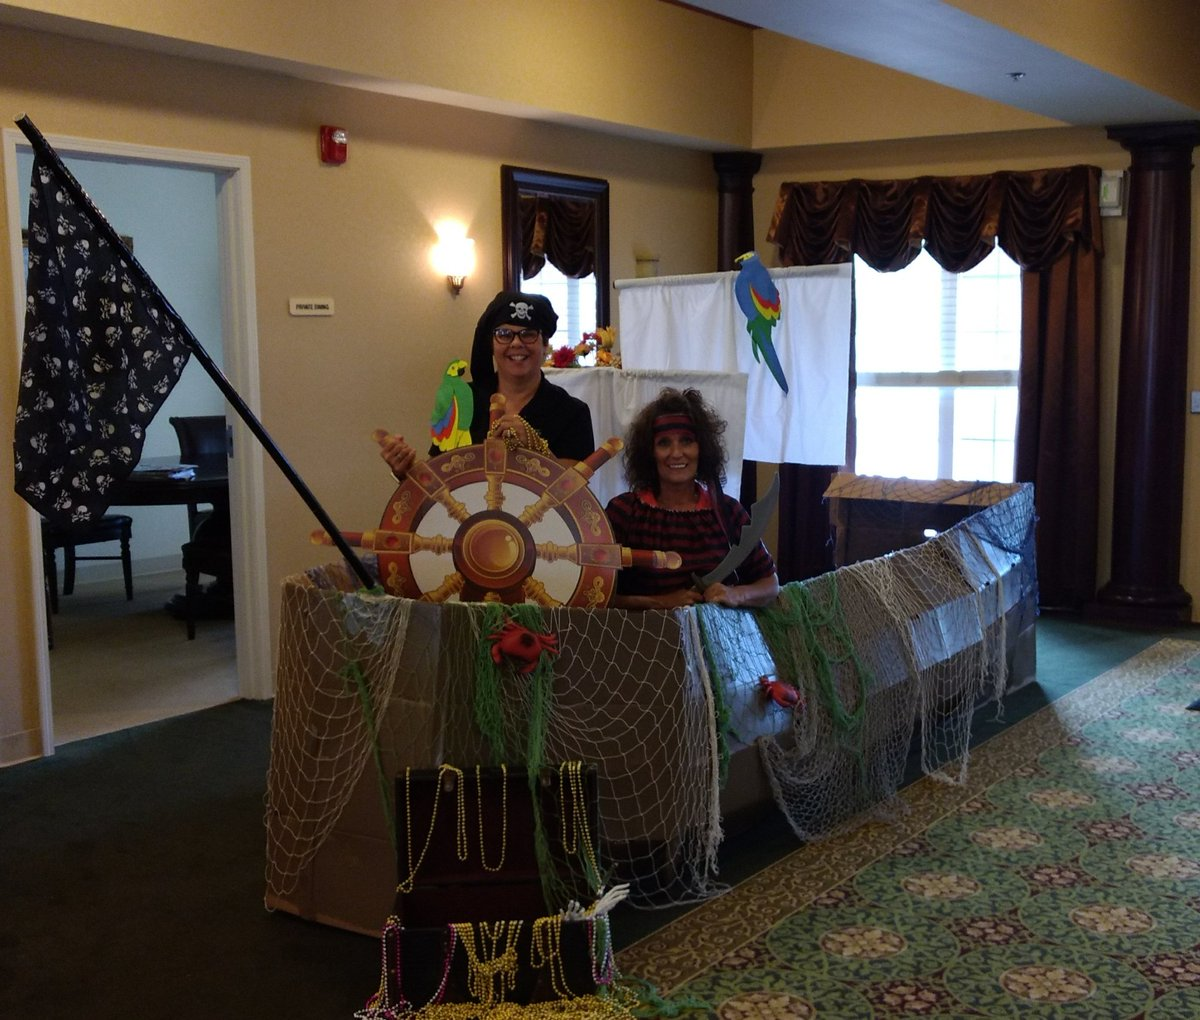 Pirates have been spotted in the Northern Ohio division! #willowsatwillard #trilogyliving #themedinner #piratesoftheCaribbean <br>http://pic.twitter.com/Ed4oVseIrm